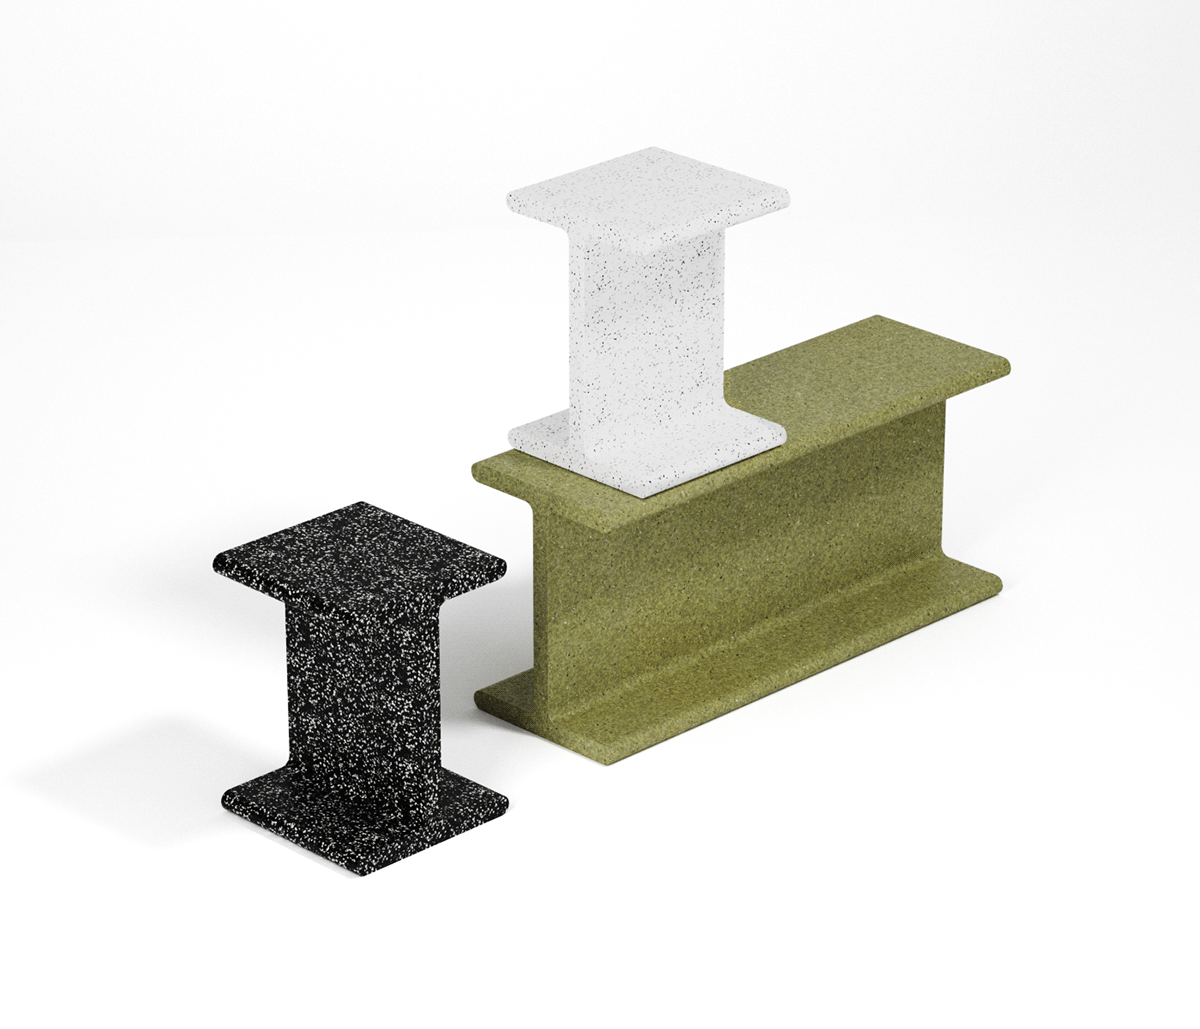 furniture furniture design  industrial plastic product product design  recycle recycling Render stool